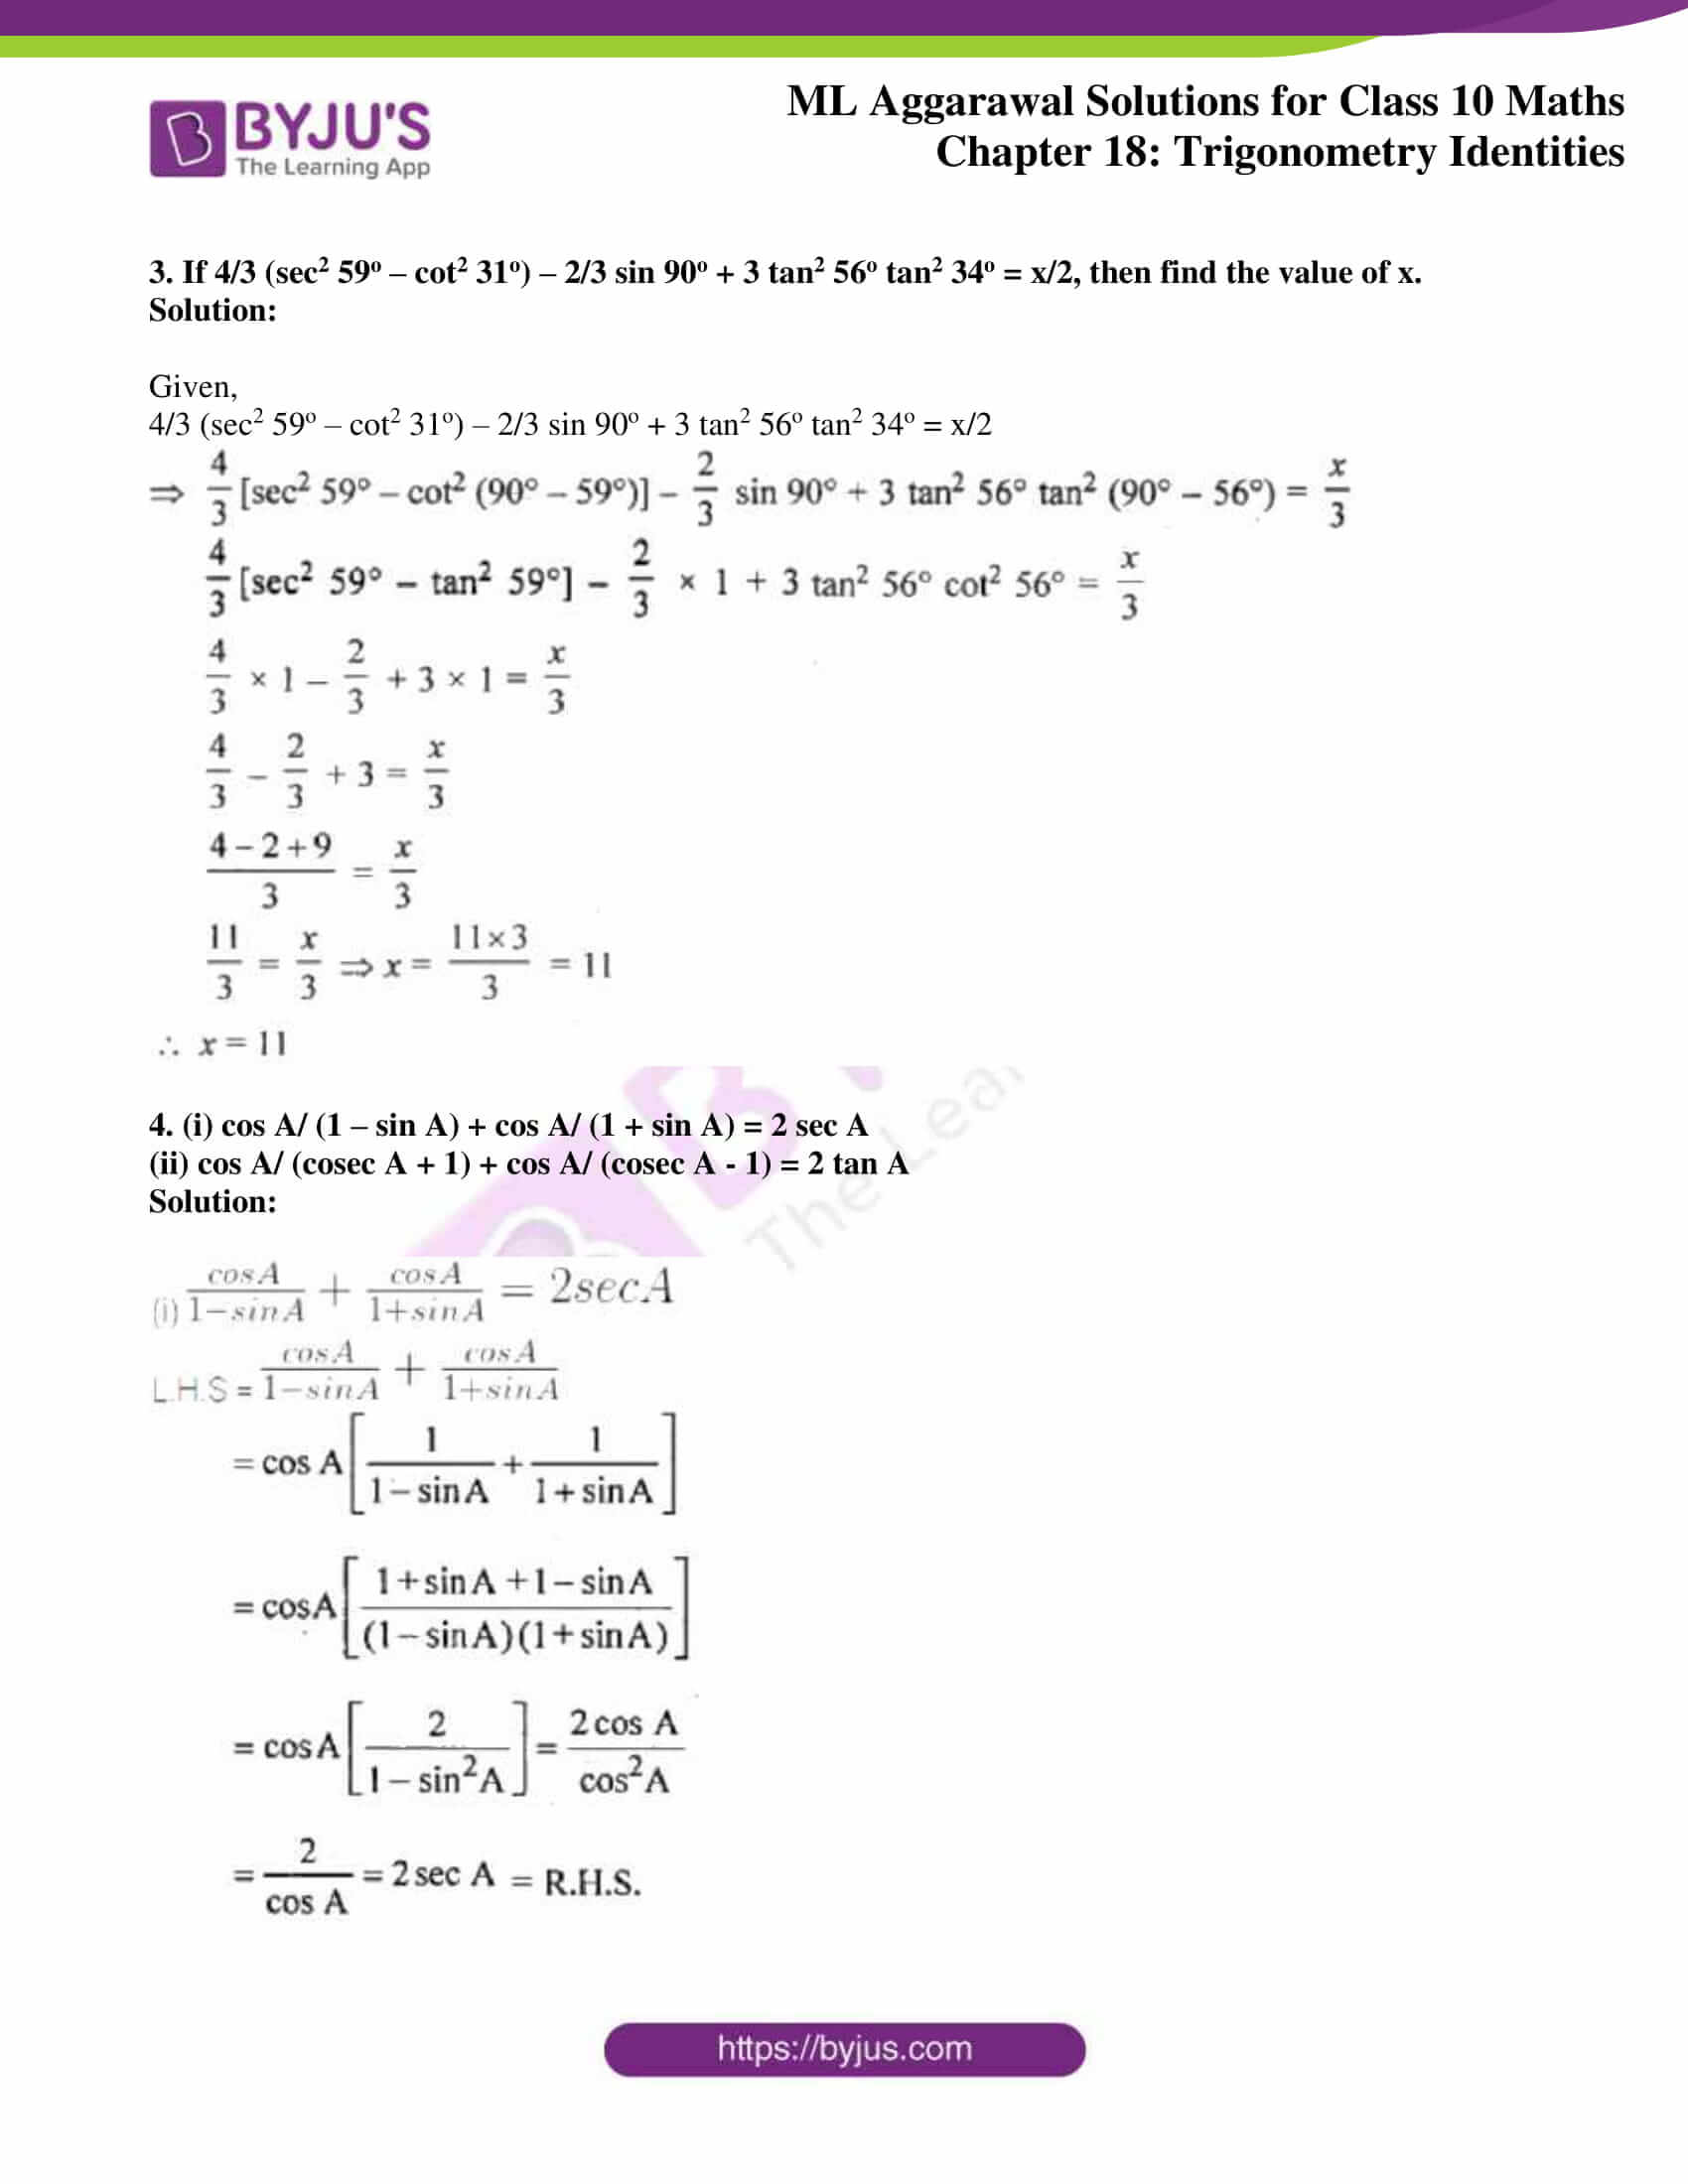 ml aggarwal solutions for class 10 maths chapter 18 29